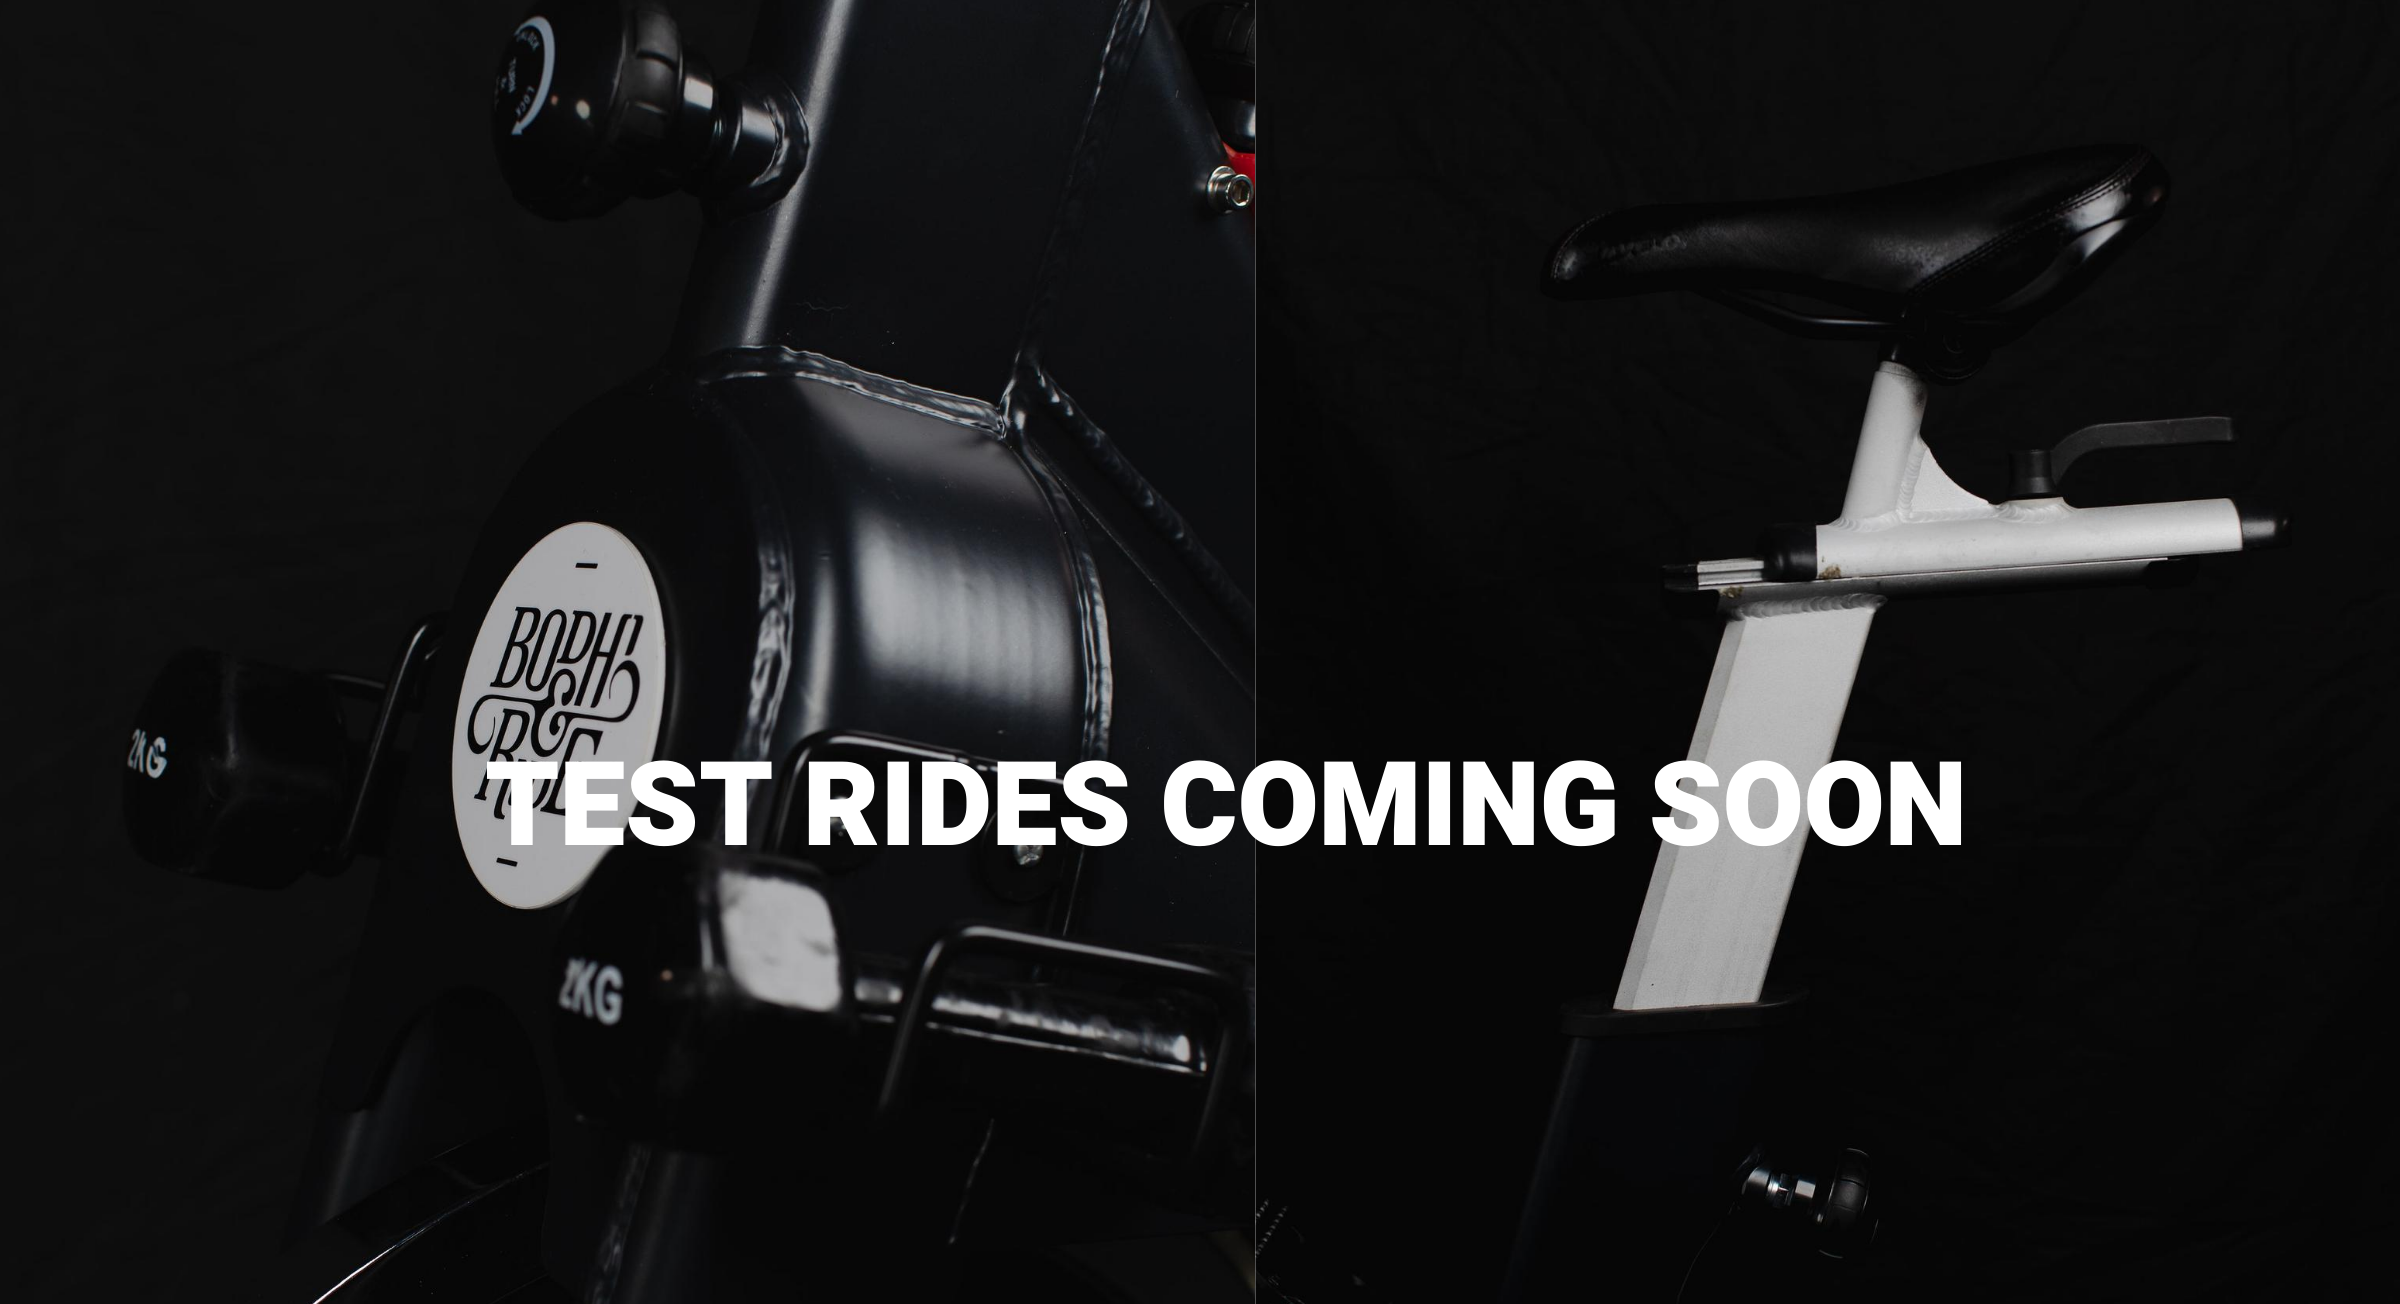 Test Rides Coming Soon